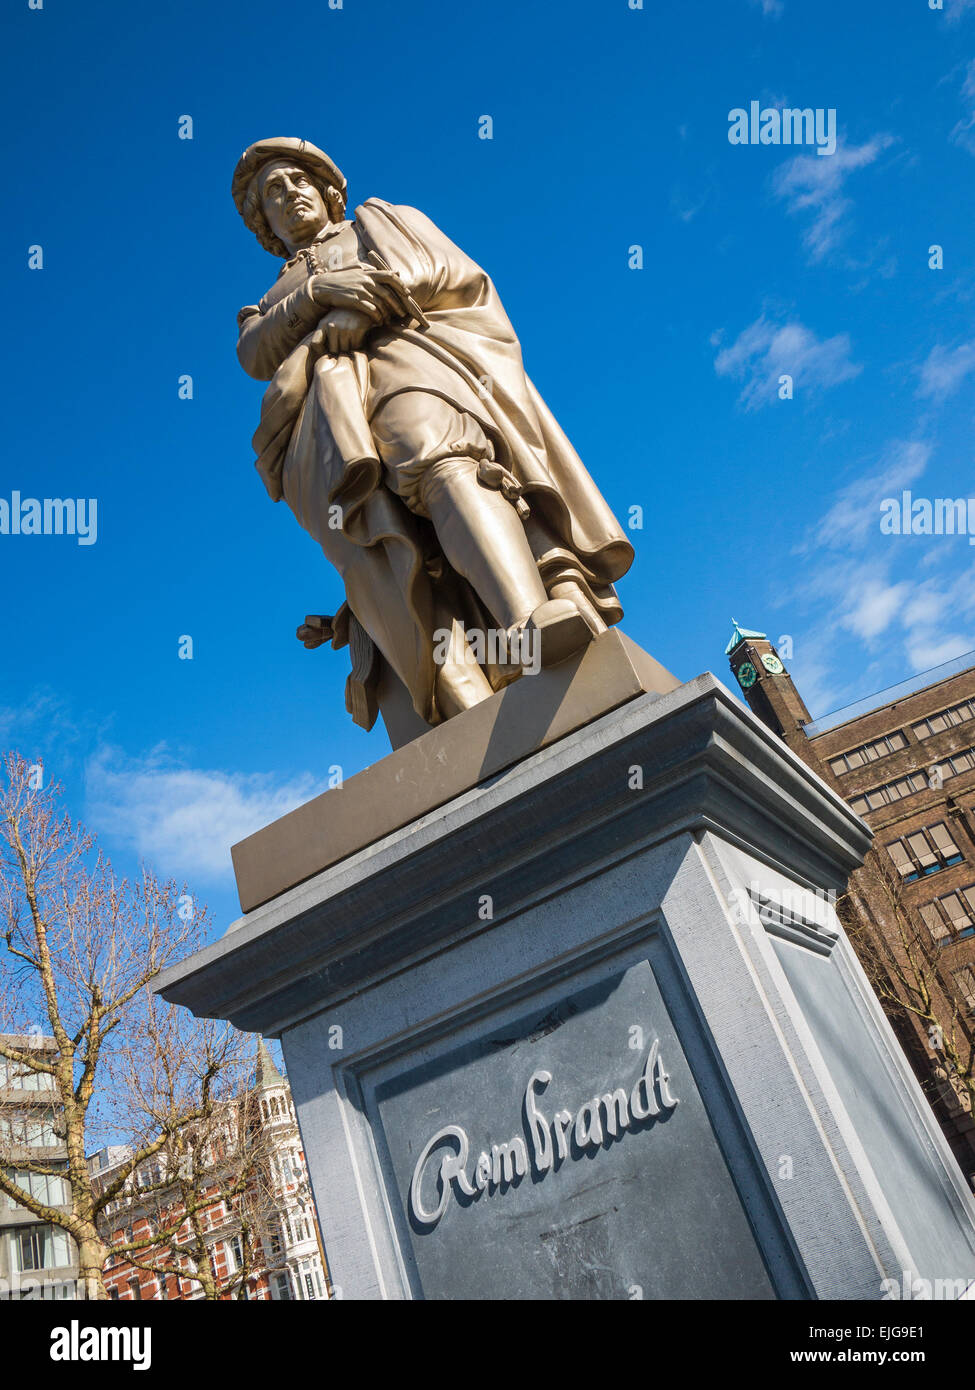 Statue of the painter Rembrandt van Rijn by Louis Royer, in Rembrandtplein square in Amsterdam, Holland - Stock Image